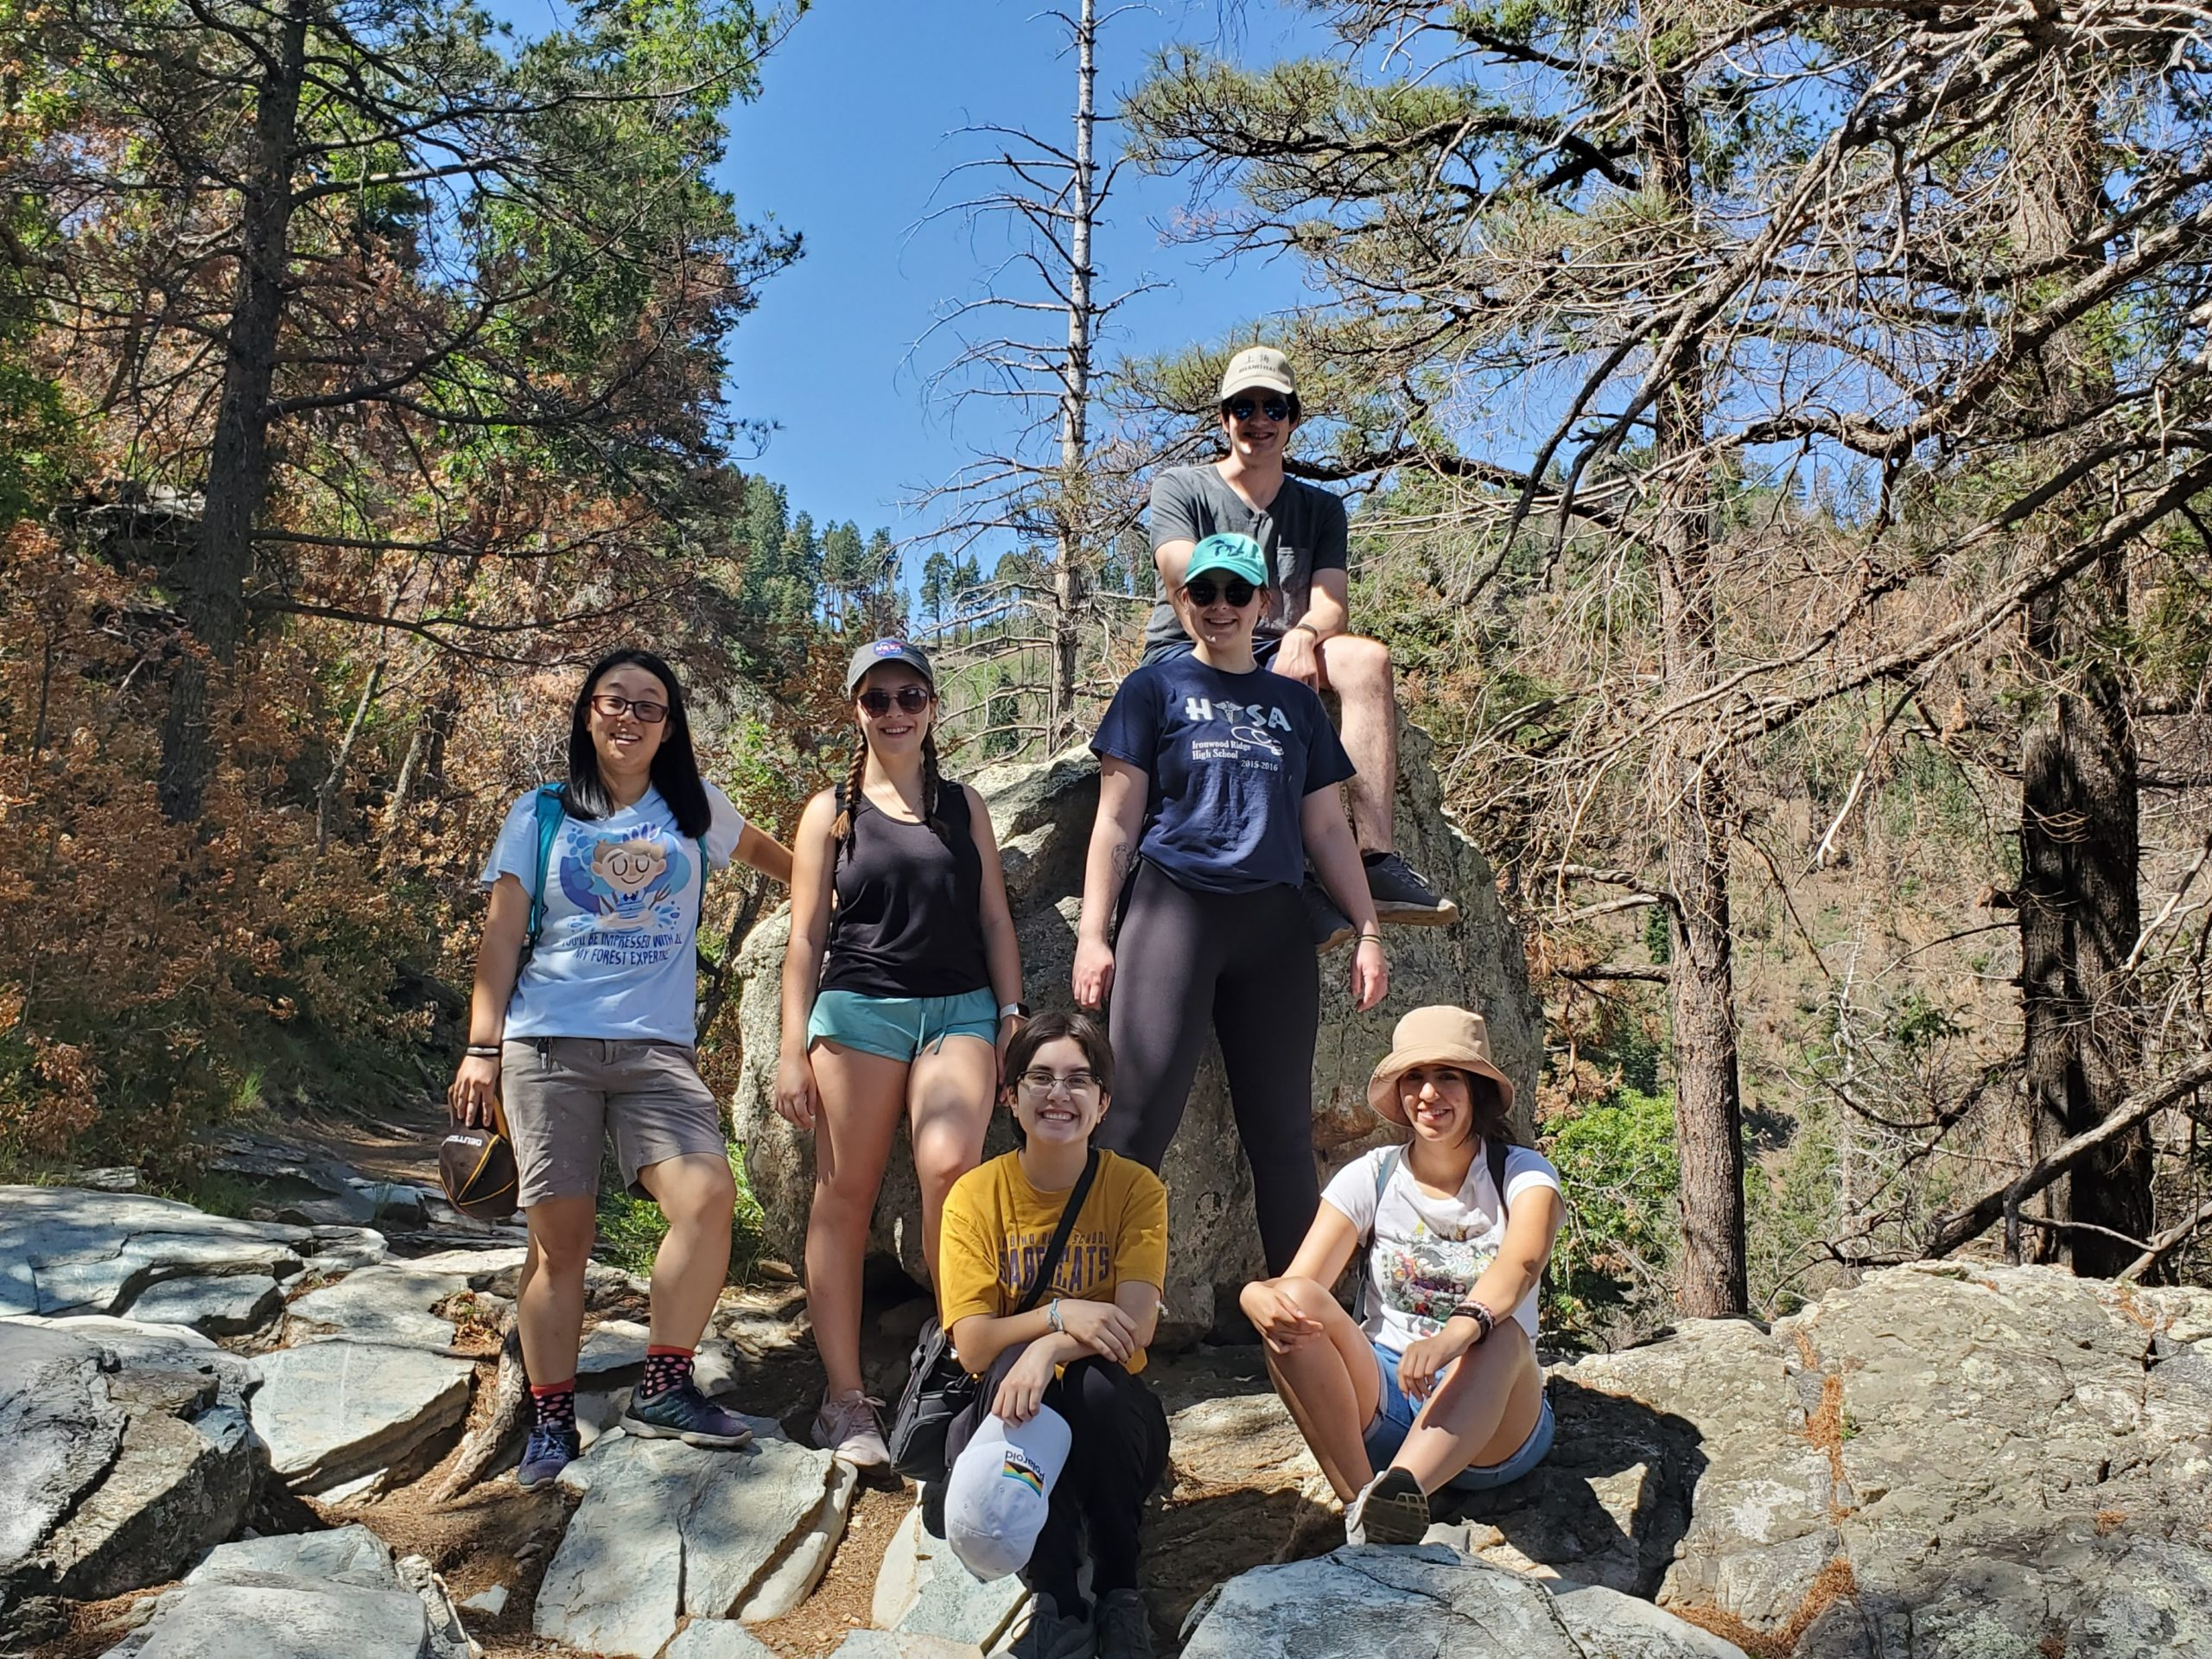 6 young adults in hiking attire standing and sitting around a large boulder.